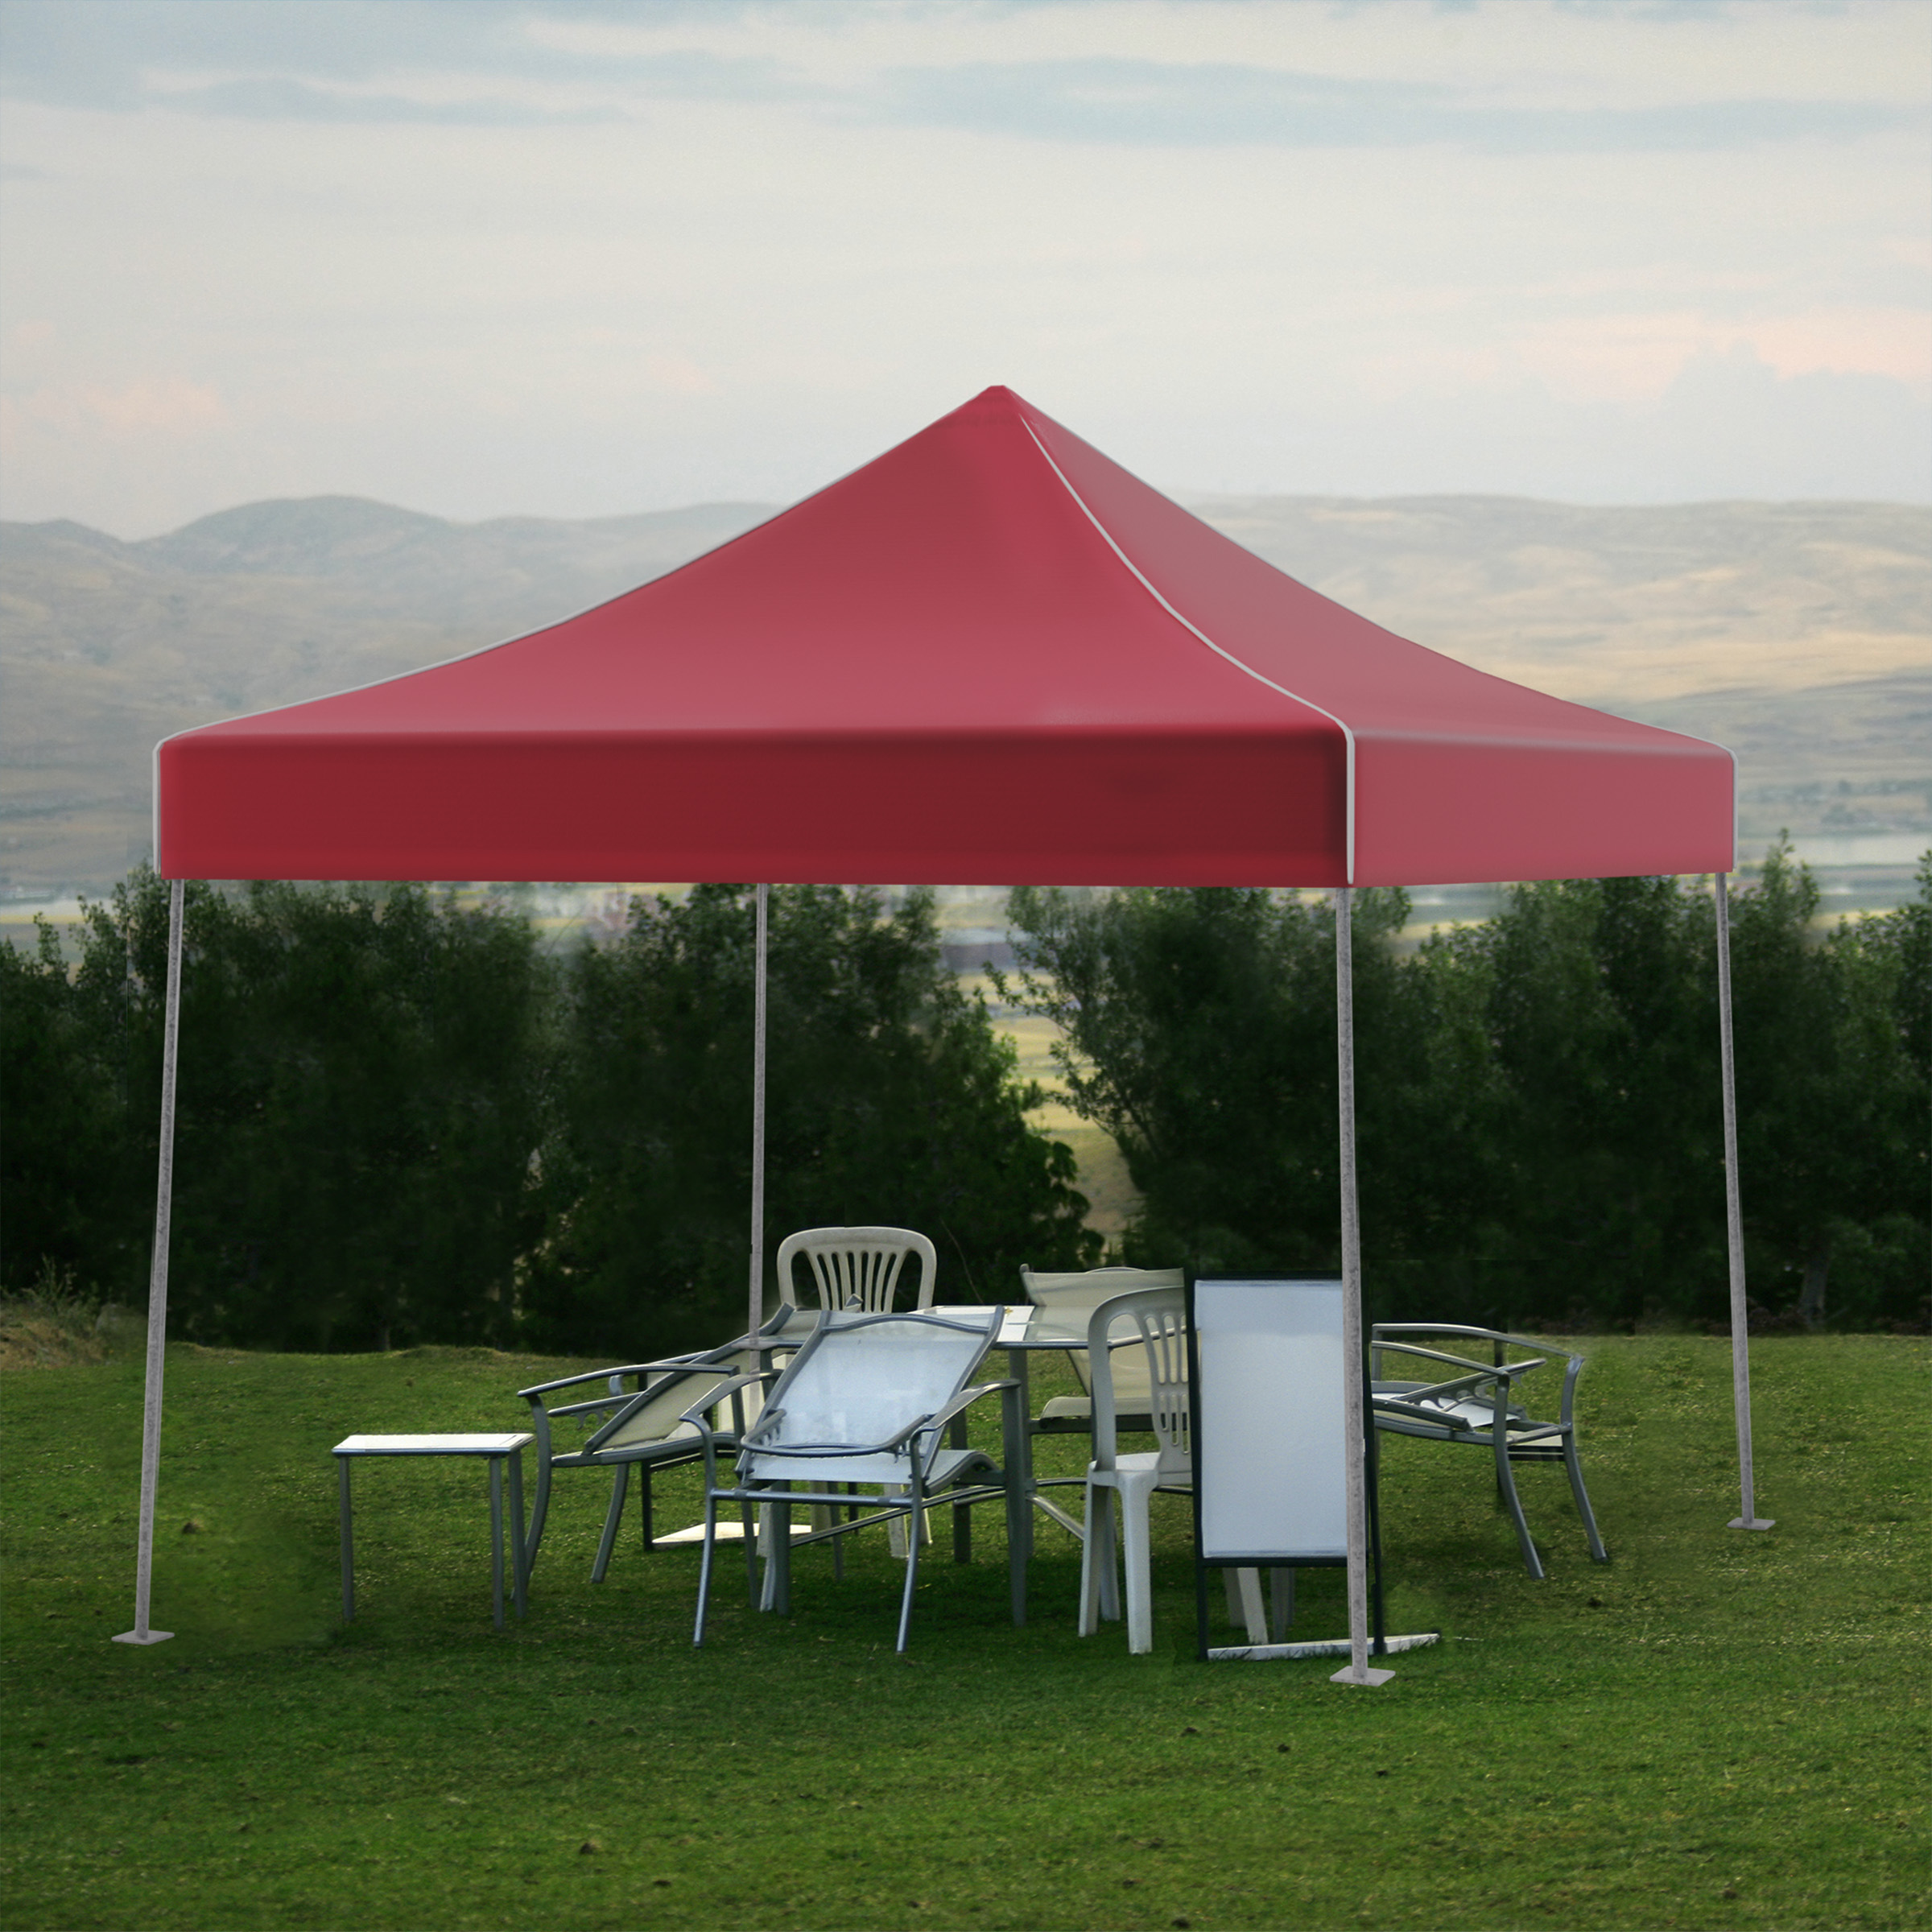 Impact Instant Canopy Tlkit 10 Ft W X D Steel Pop. 10 X Tents & Stalwart Pop Up Instant Canopy Tent 10 X Red - Best Tent 2018